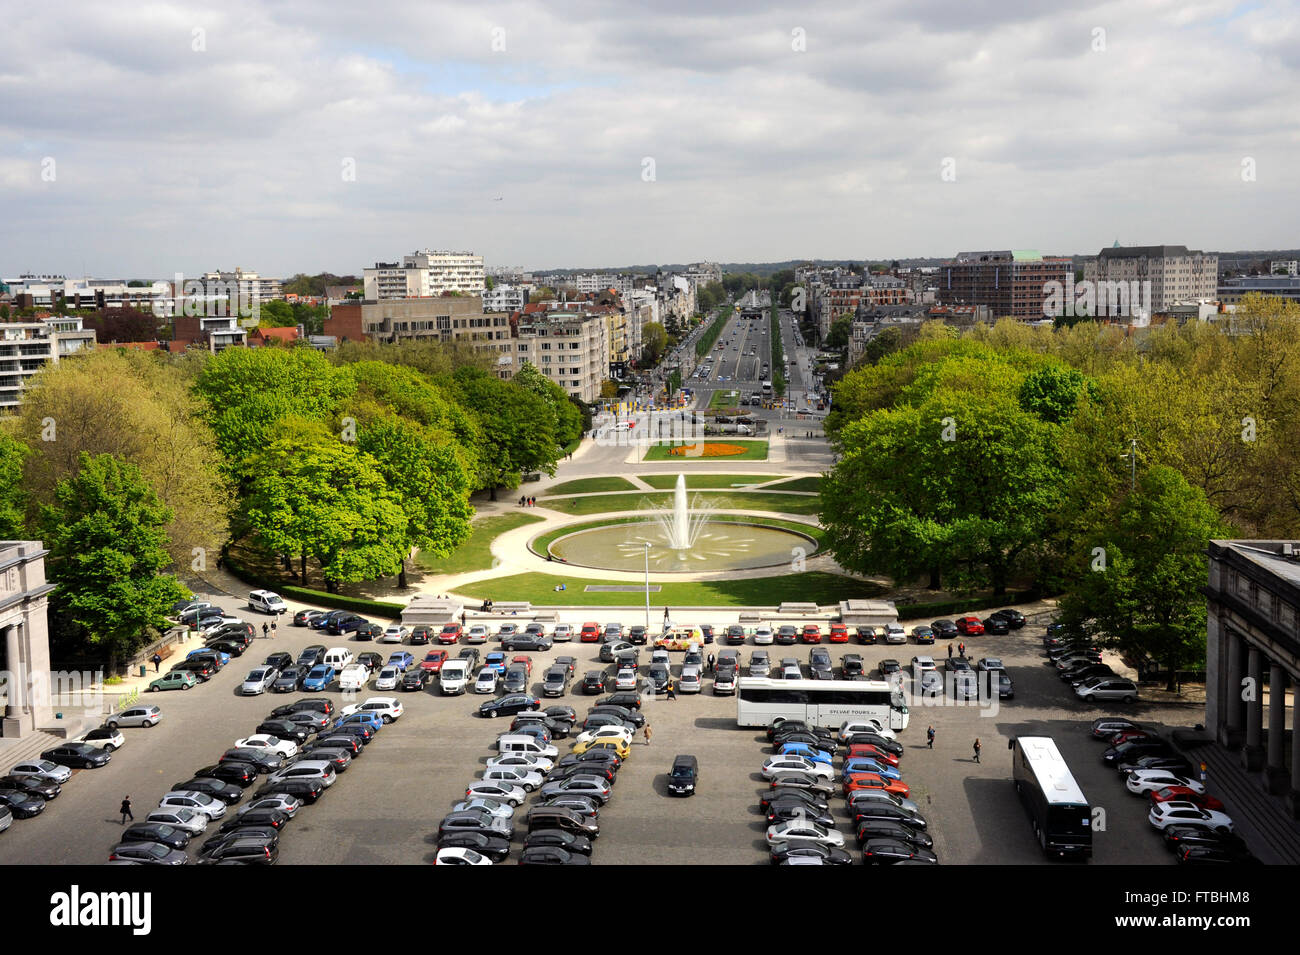 Park of the Fiftieth Anniversary,Brussels,Belgium - Stock Image